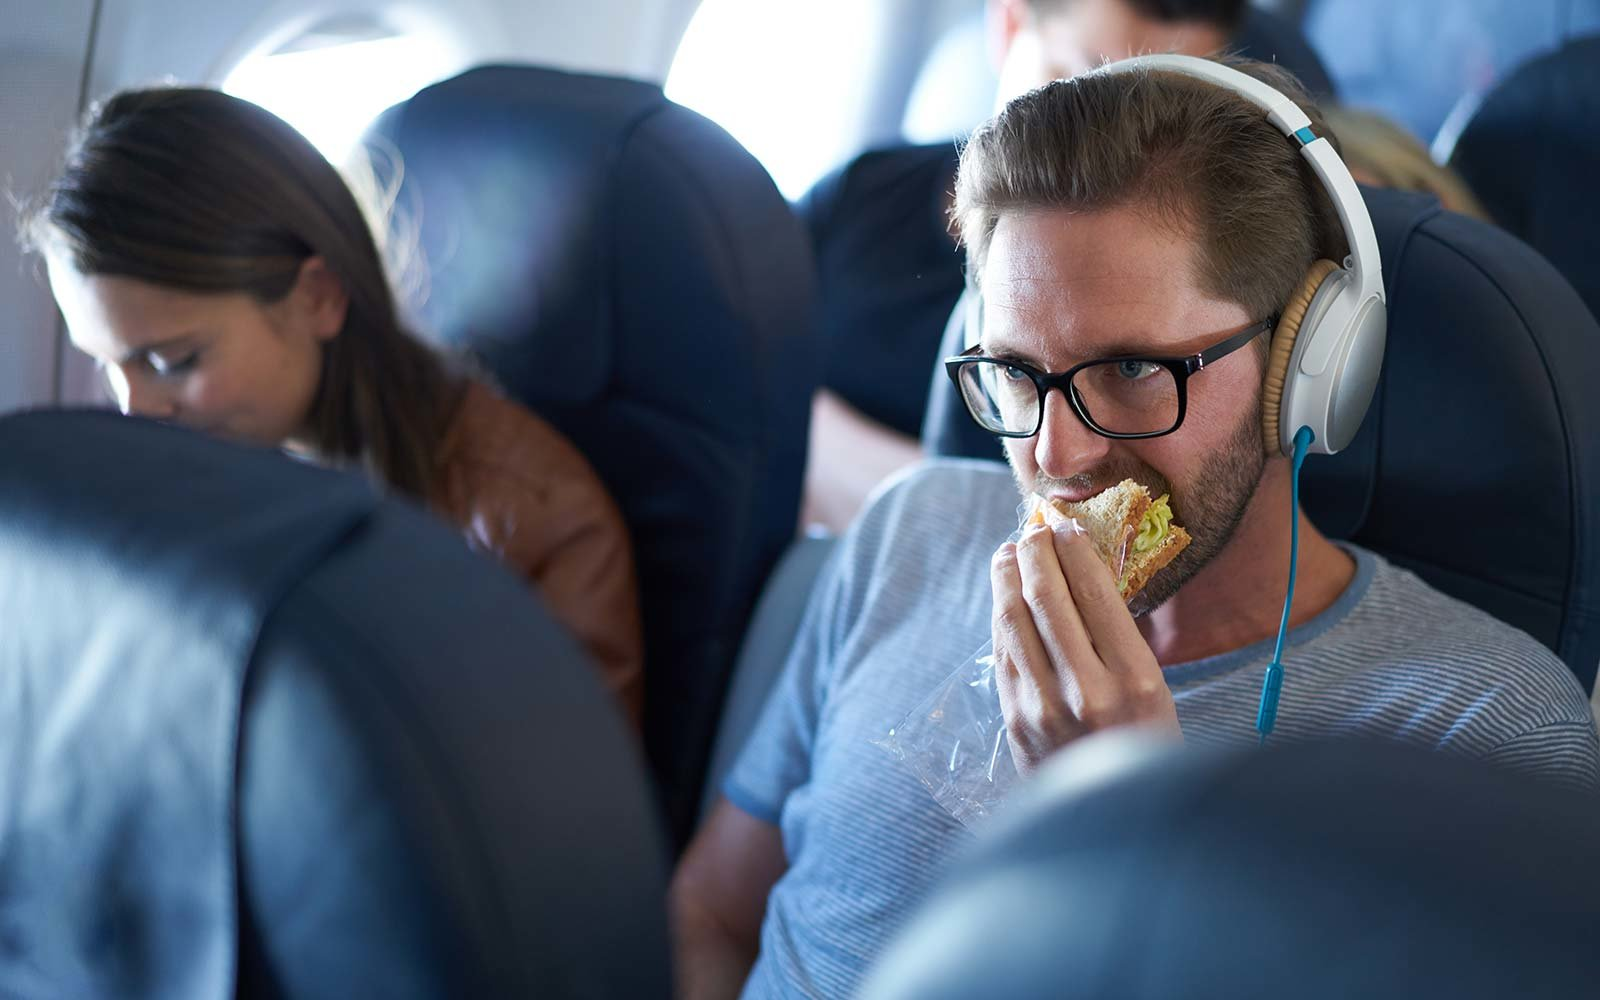 The airline that charges most for sandwich